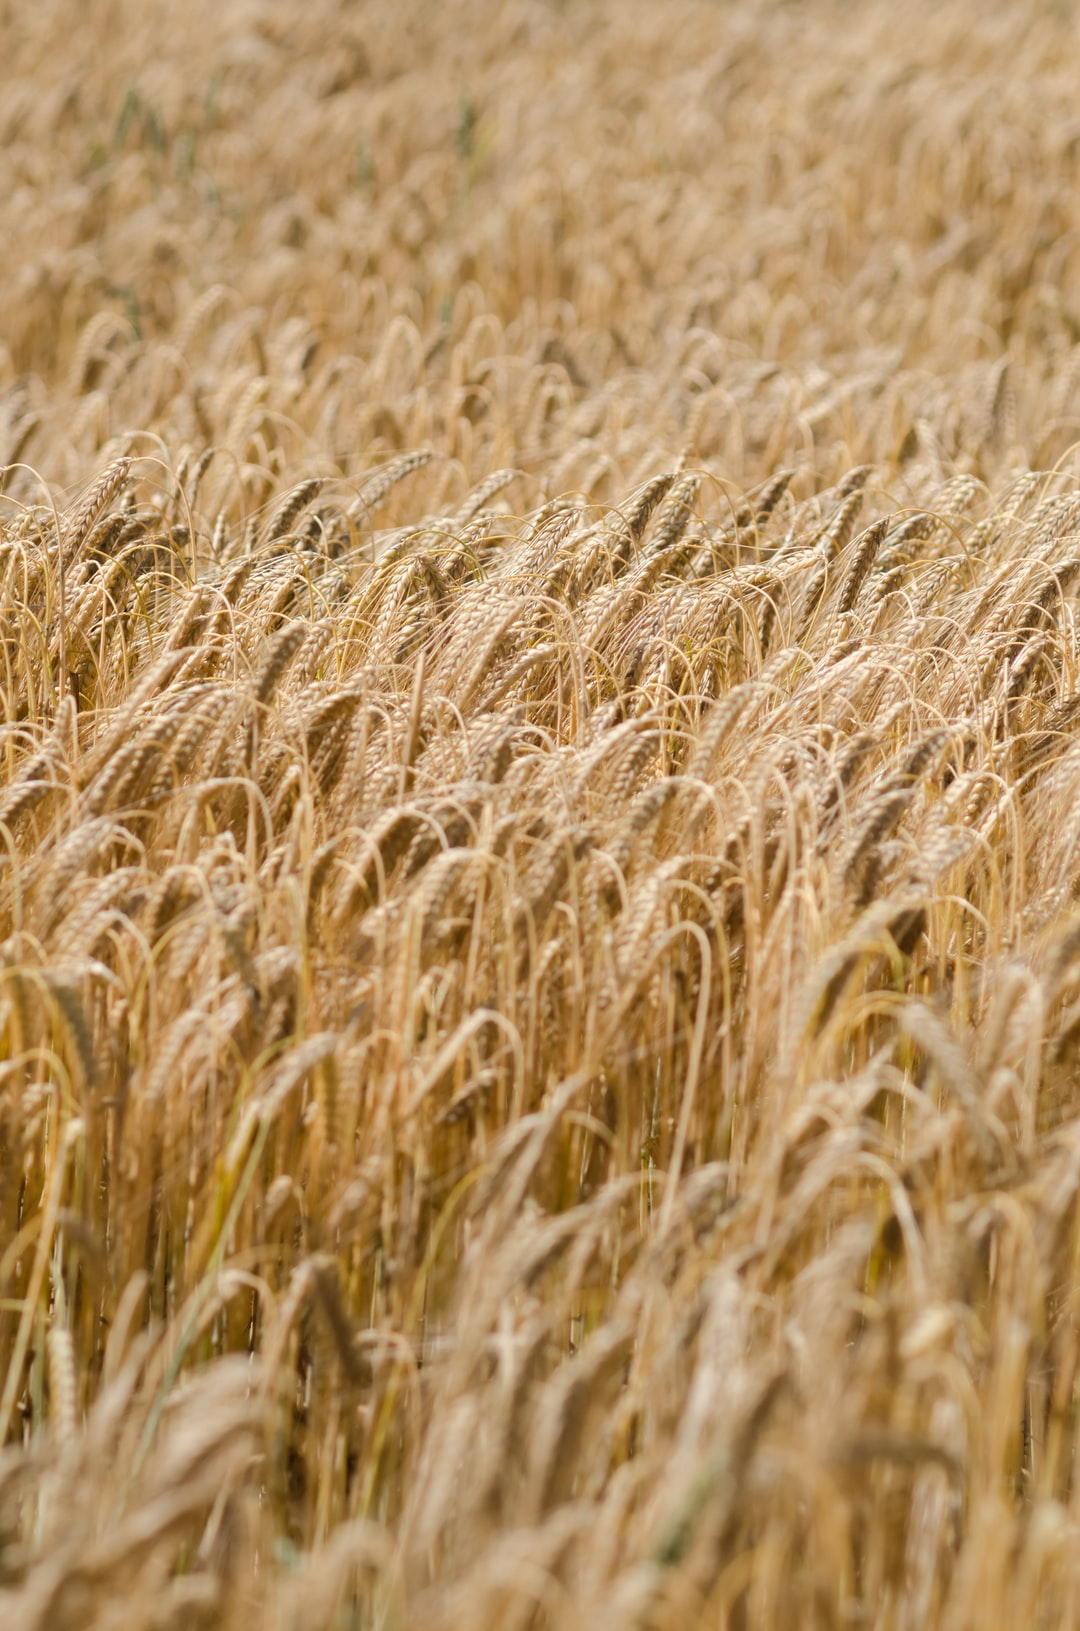 Golden rye field in the countryside